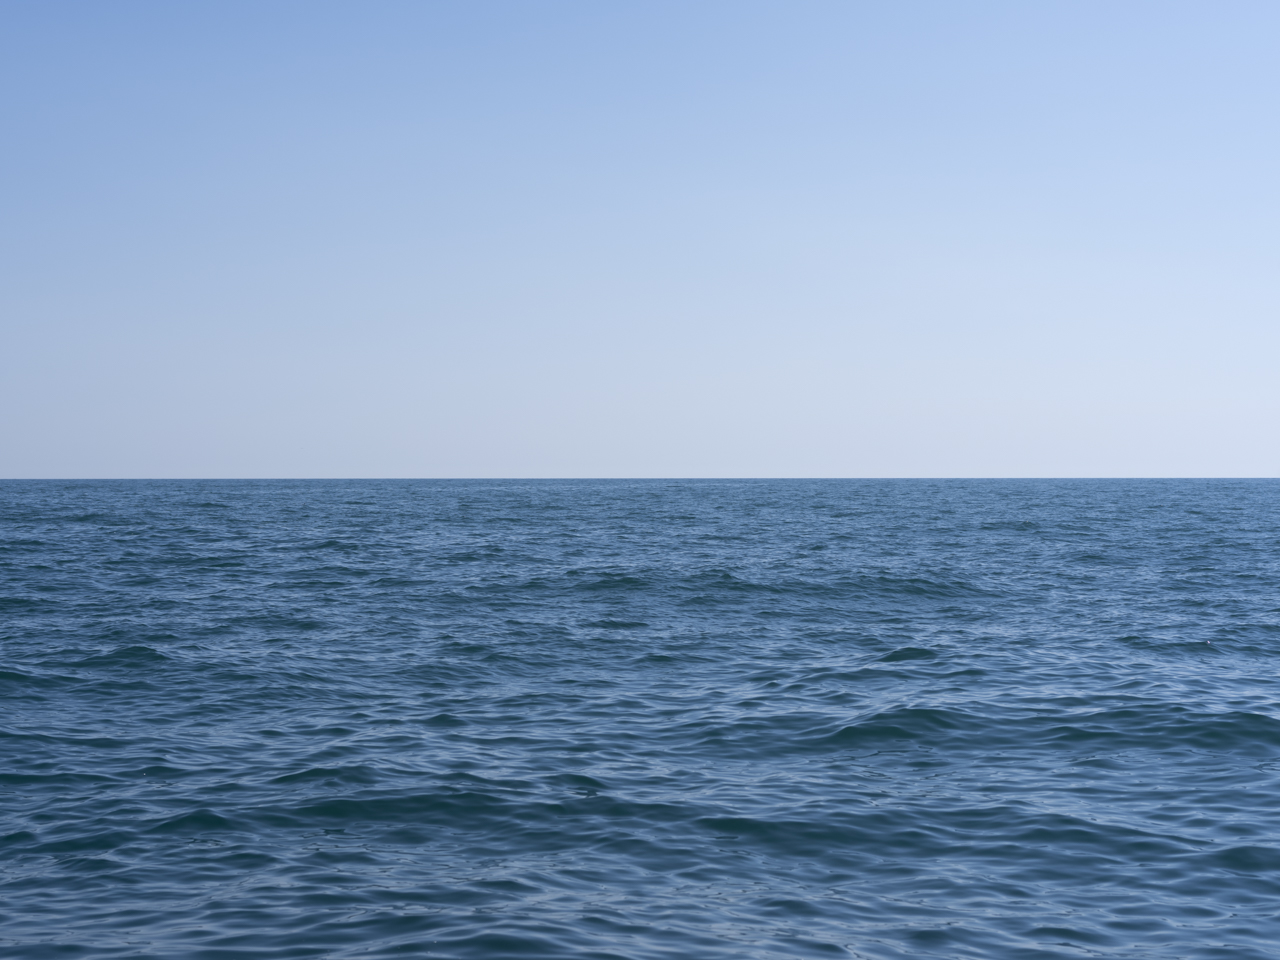 a clear blue piercingly beautiful day on Lake Michigan's shore